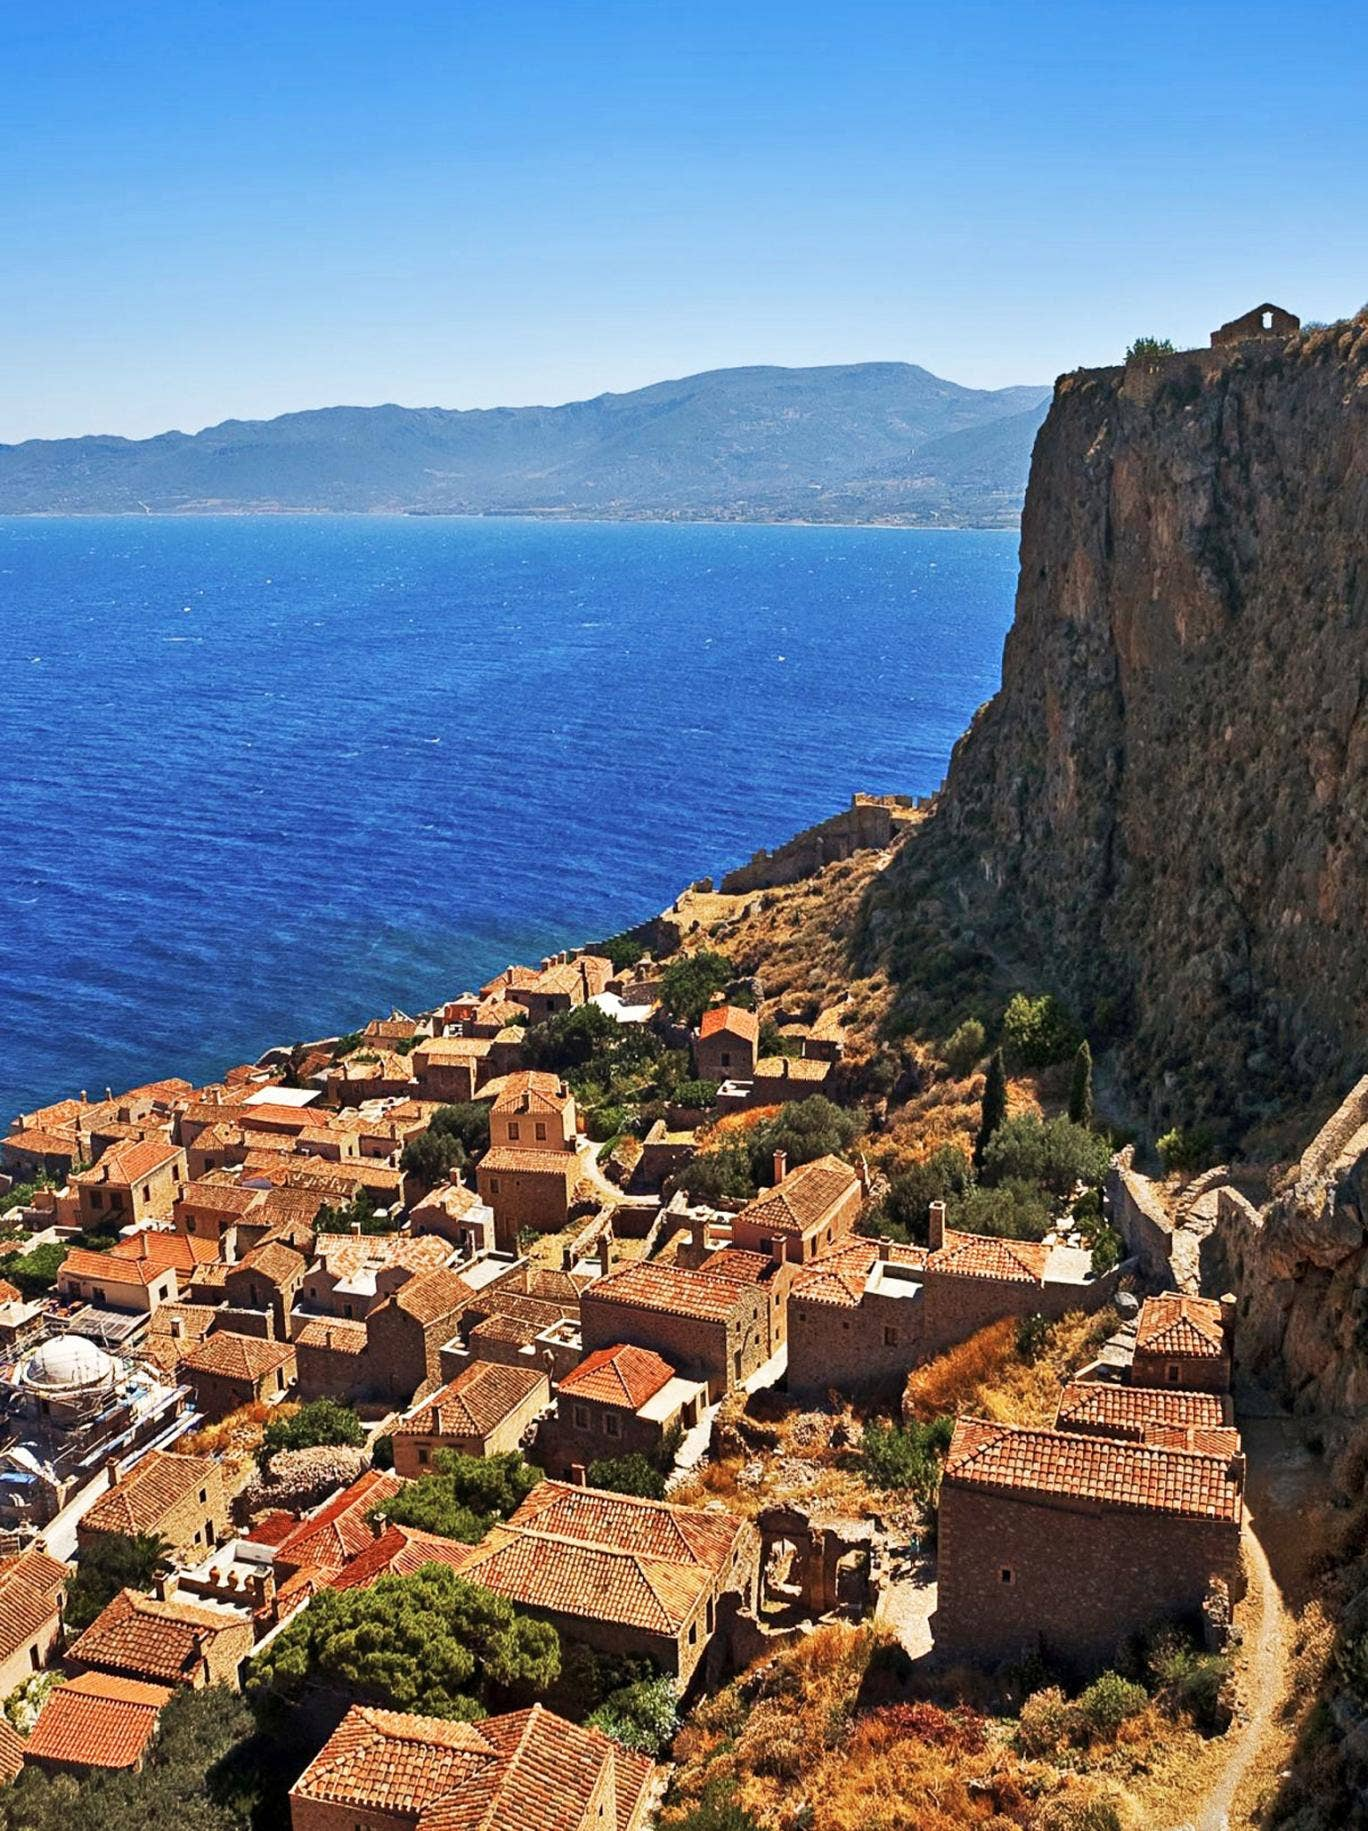 Greece is the word: the hill town of Monemvasia